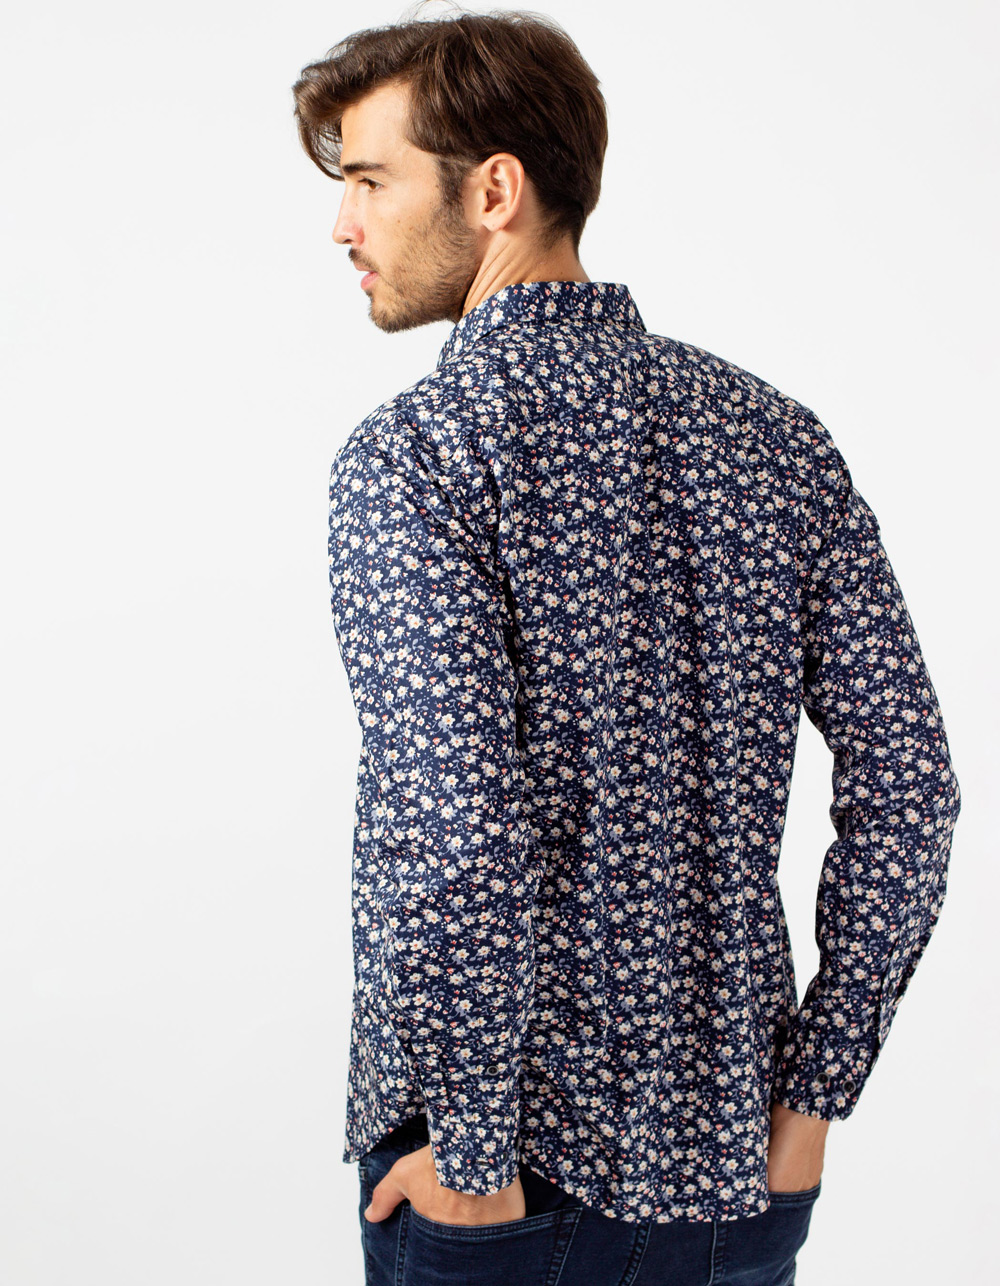 Flower print shirt - Backside